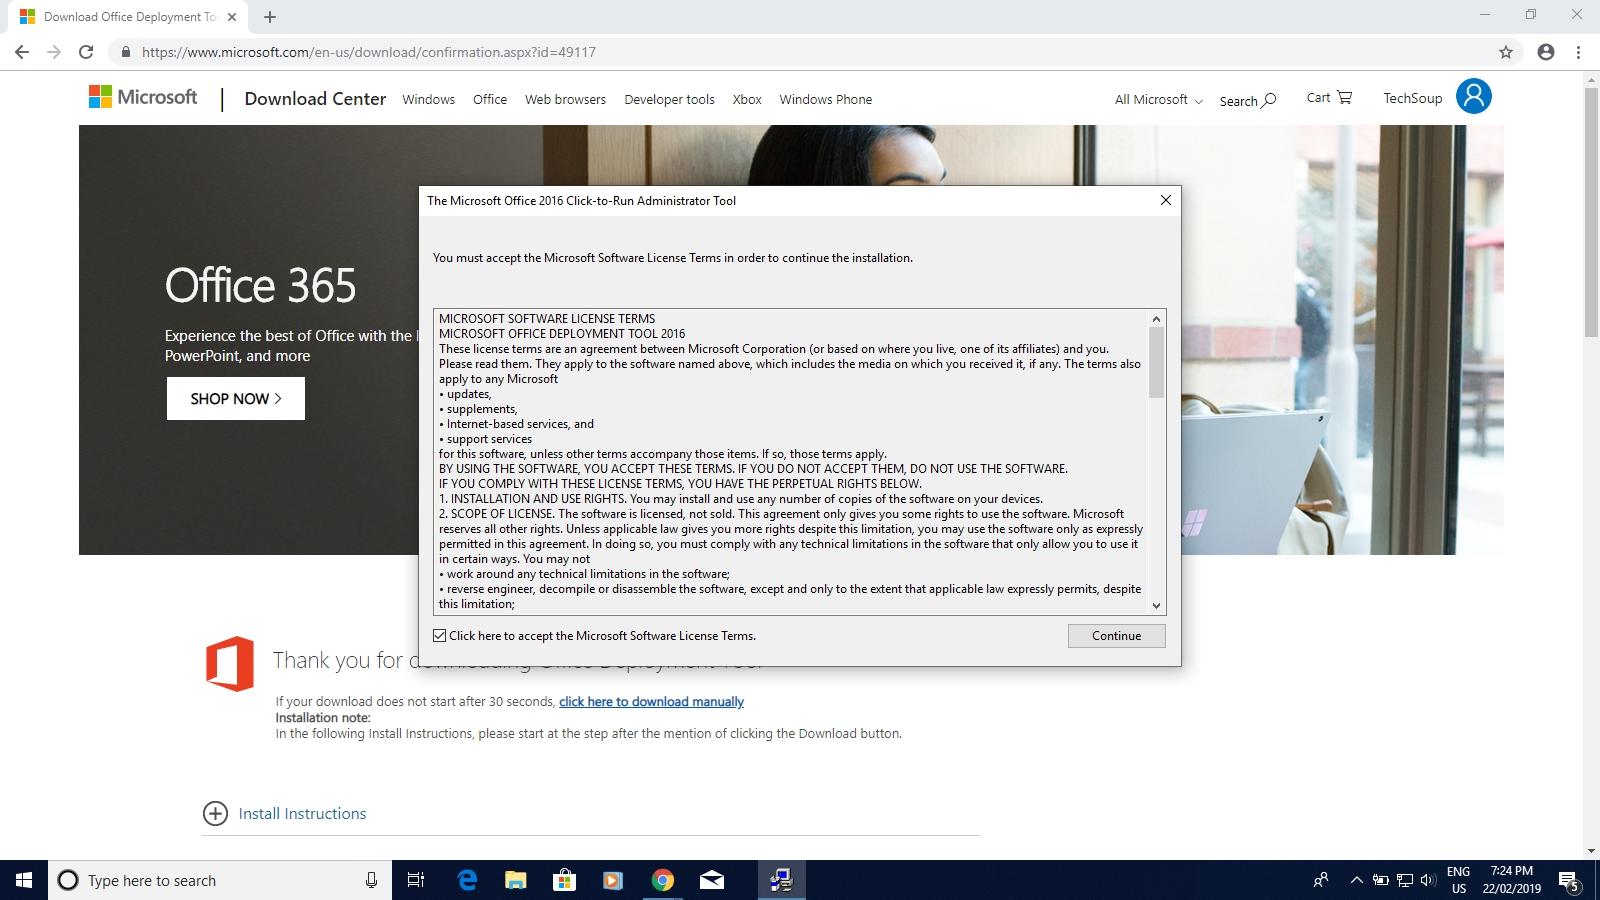 Image shows a dialog box for The Microsoft Office Click-to-run Administrator tool; the box contains the prompt to accept Microsoft's Software Licence Terms.